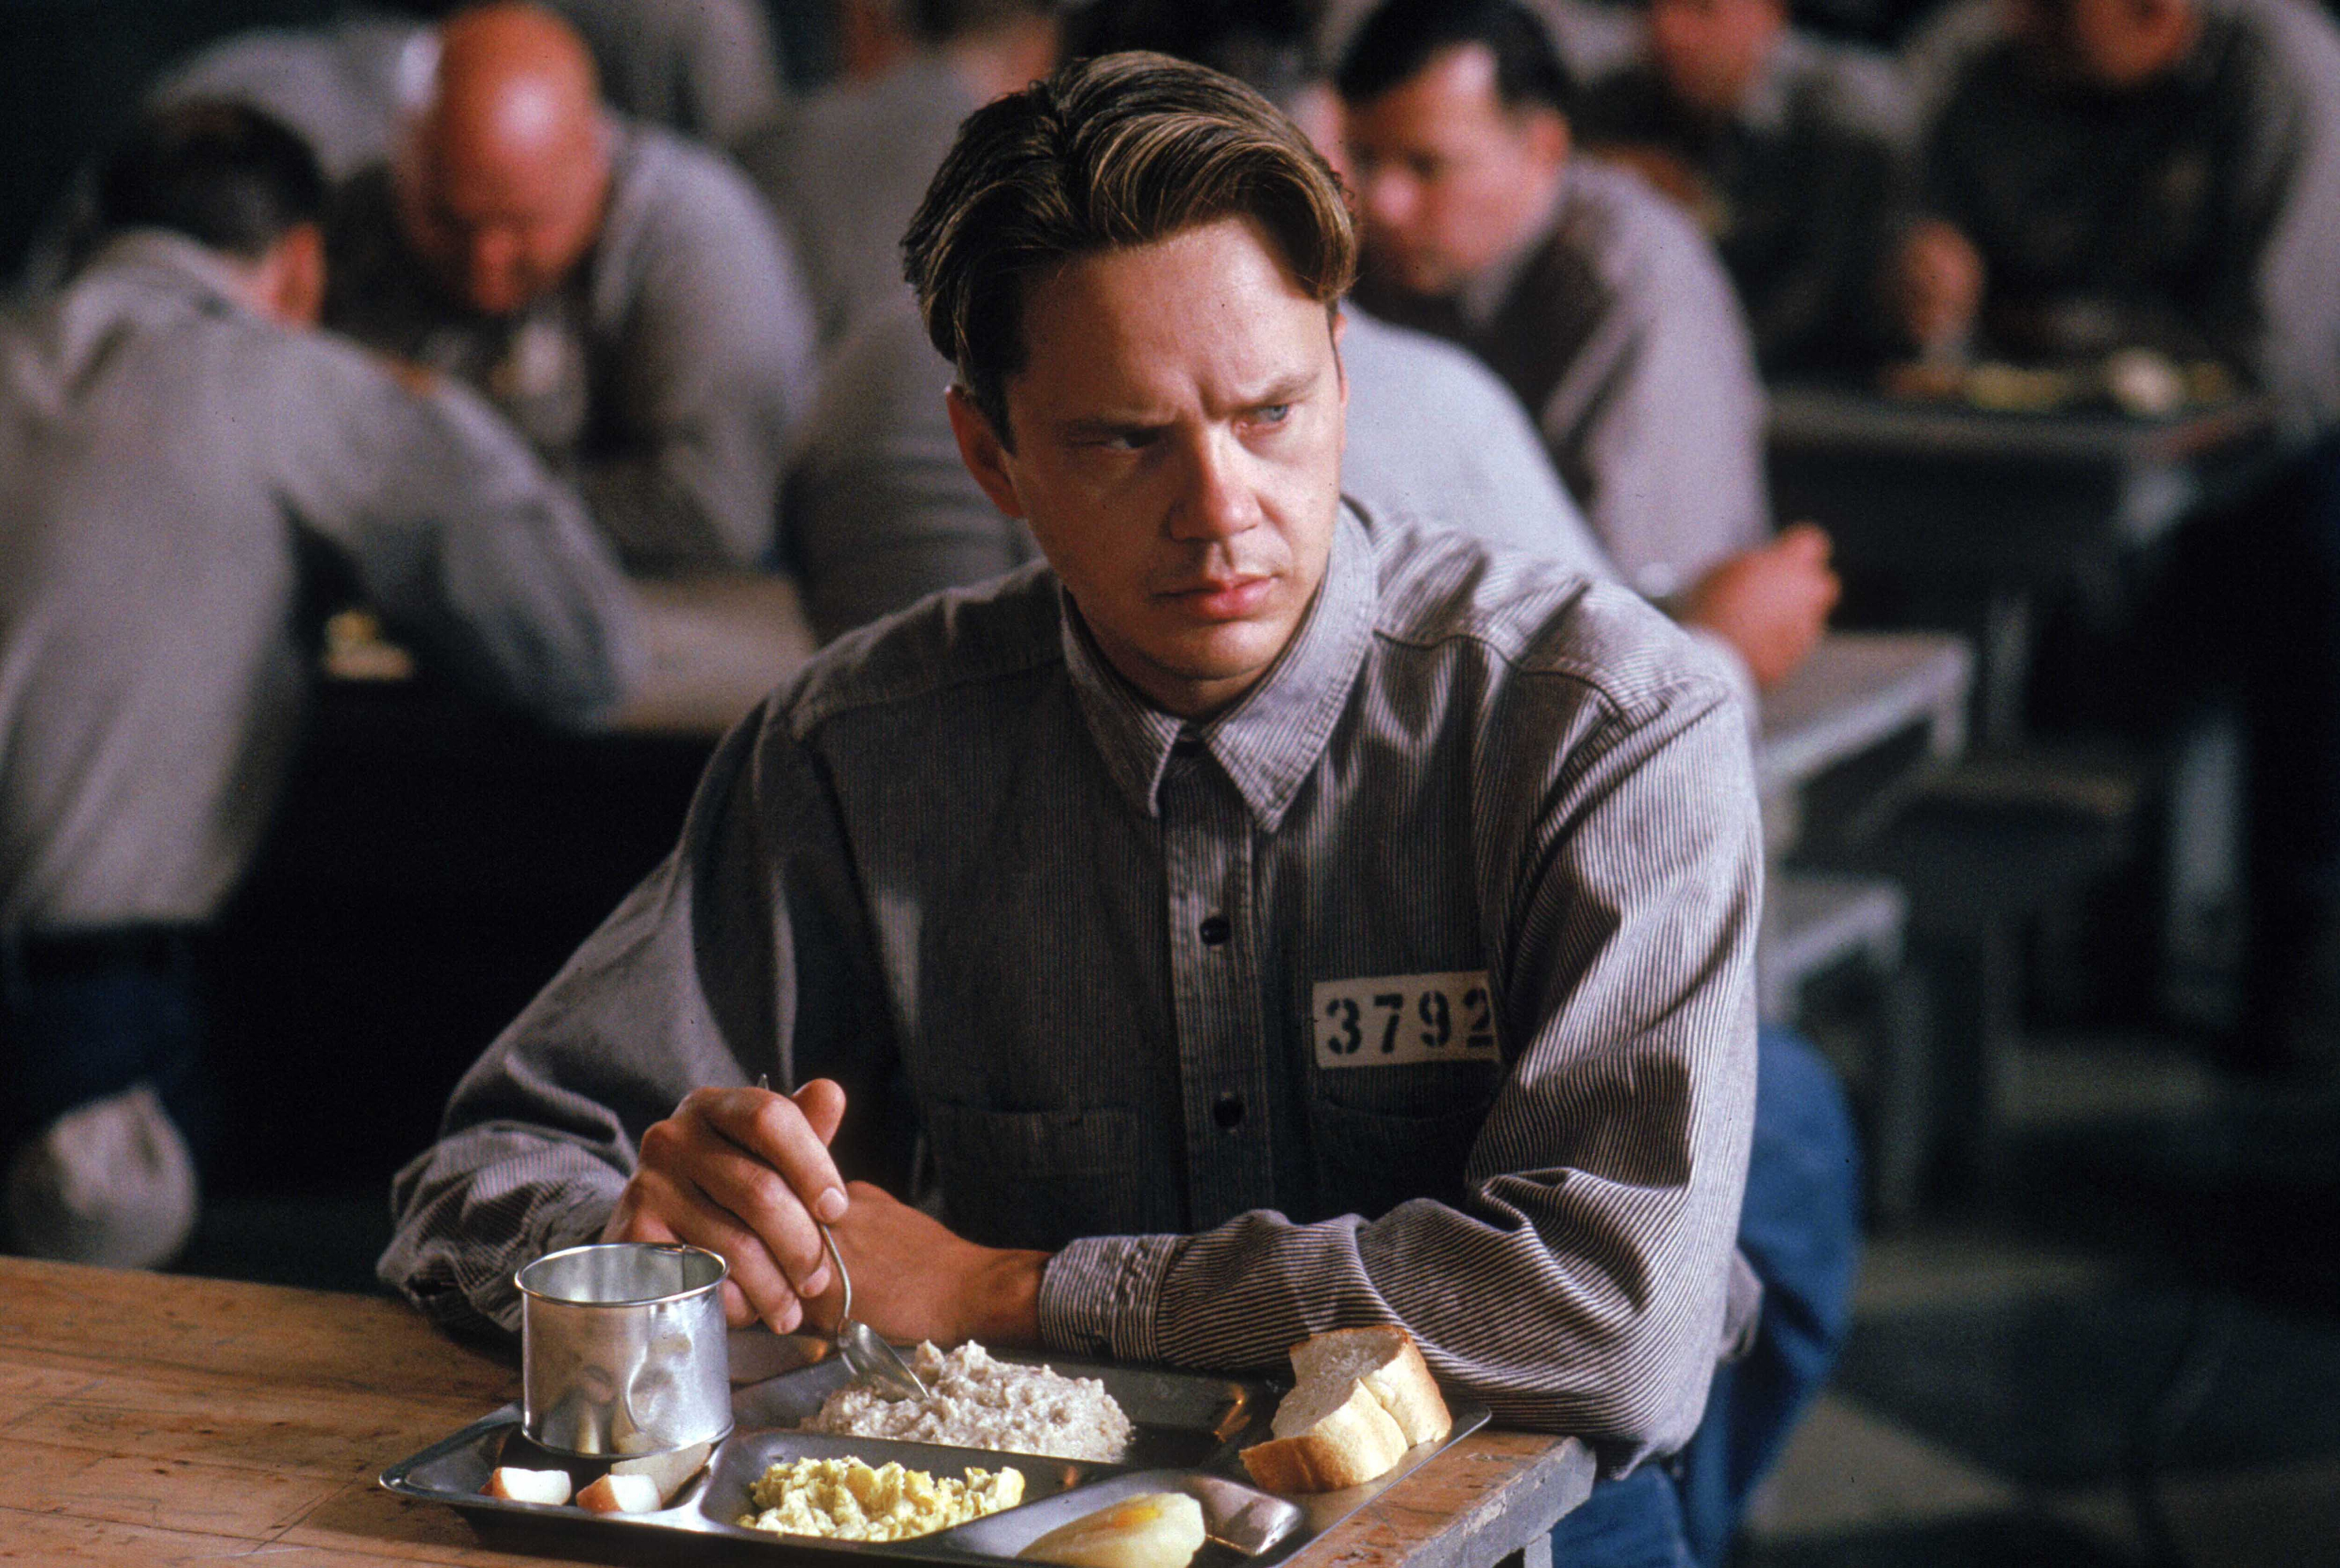 shawshank redemption film analysis The shawshank redemption: an analysis in frank darabont's screenplay for the film, the shawshank redemption, andy dufresne (tim robbins), the protagonist.